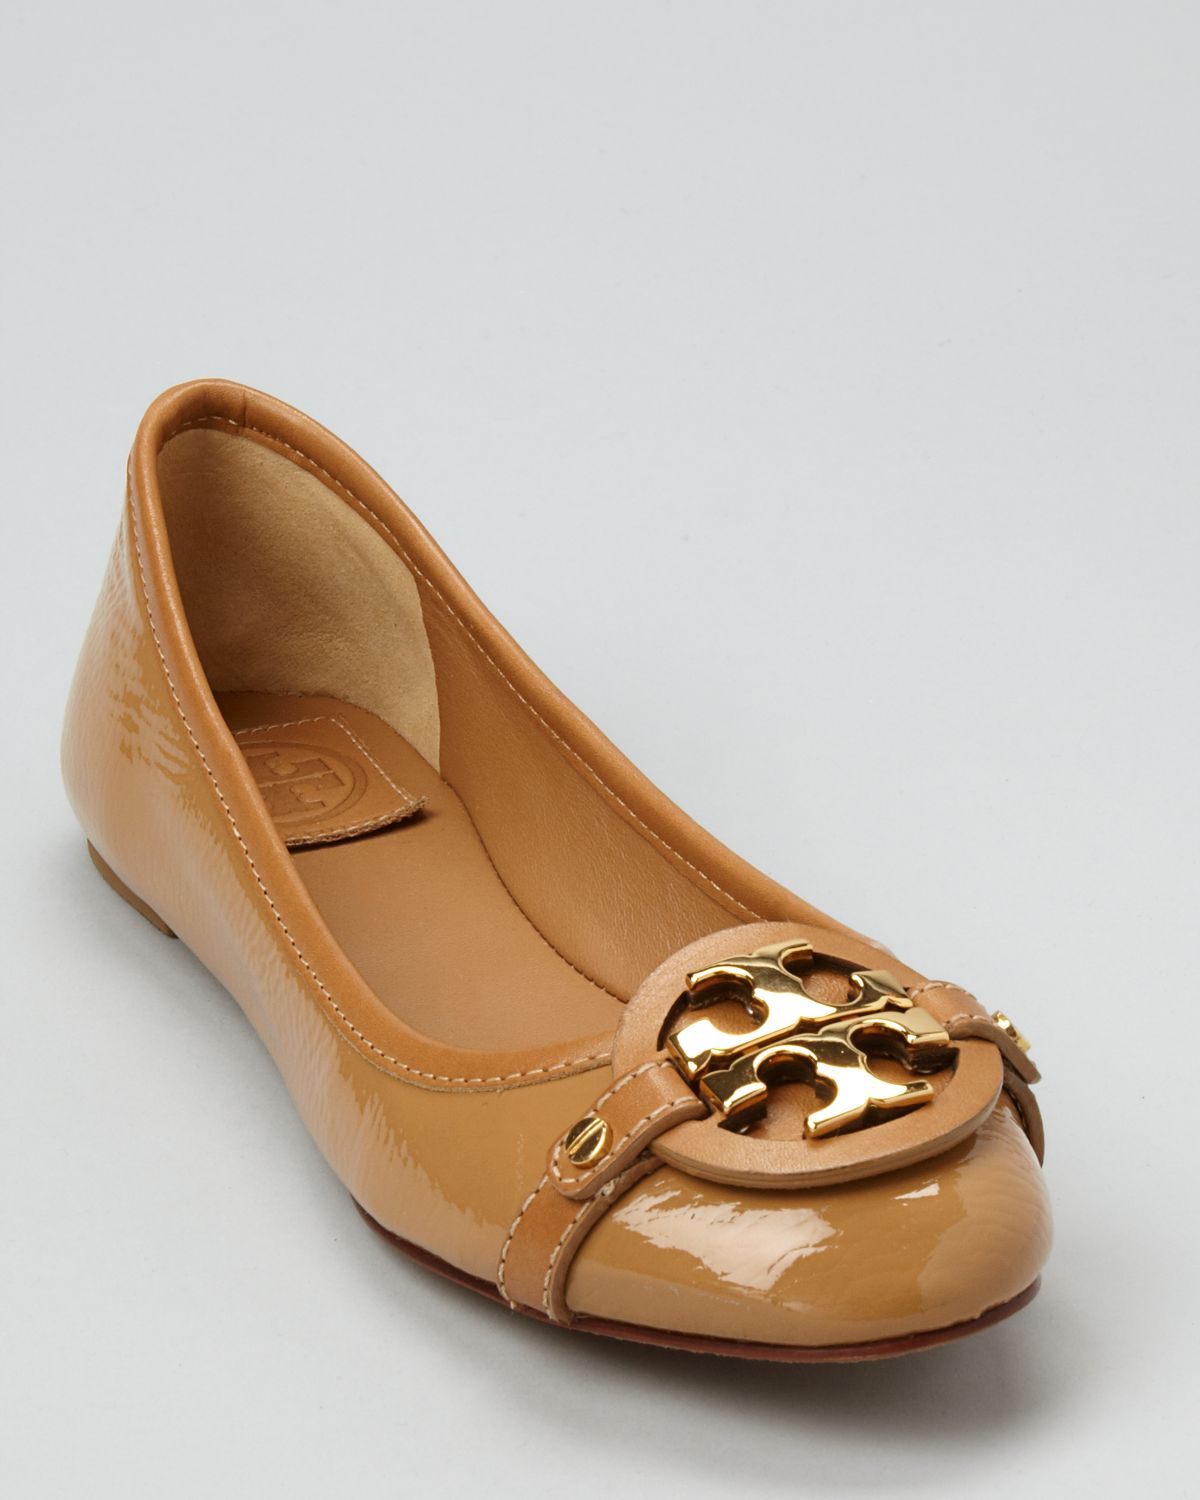 Shop for Tory Burch at modestokeetonl4jflm.gq Visit modestokeetonl4jflm.gq to find clothing, accessories, shoes, cosmetics & more. The Style of Your Life.